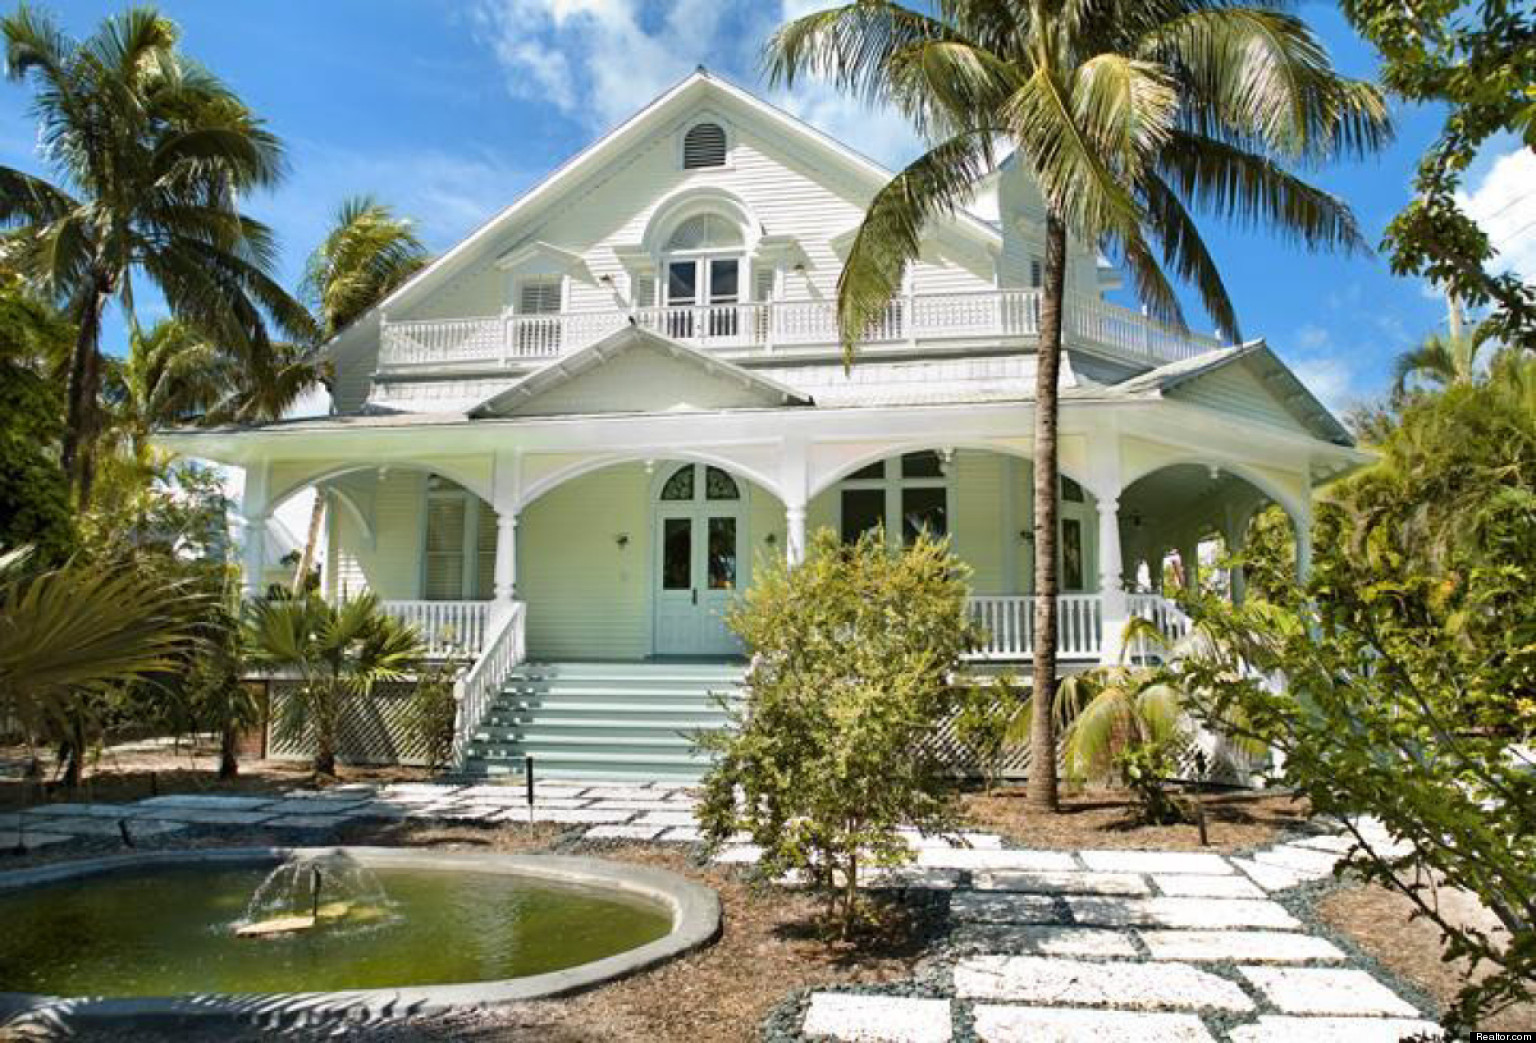 Best Historic Key West Homes On The Market PHOTOS